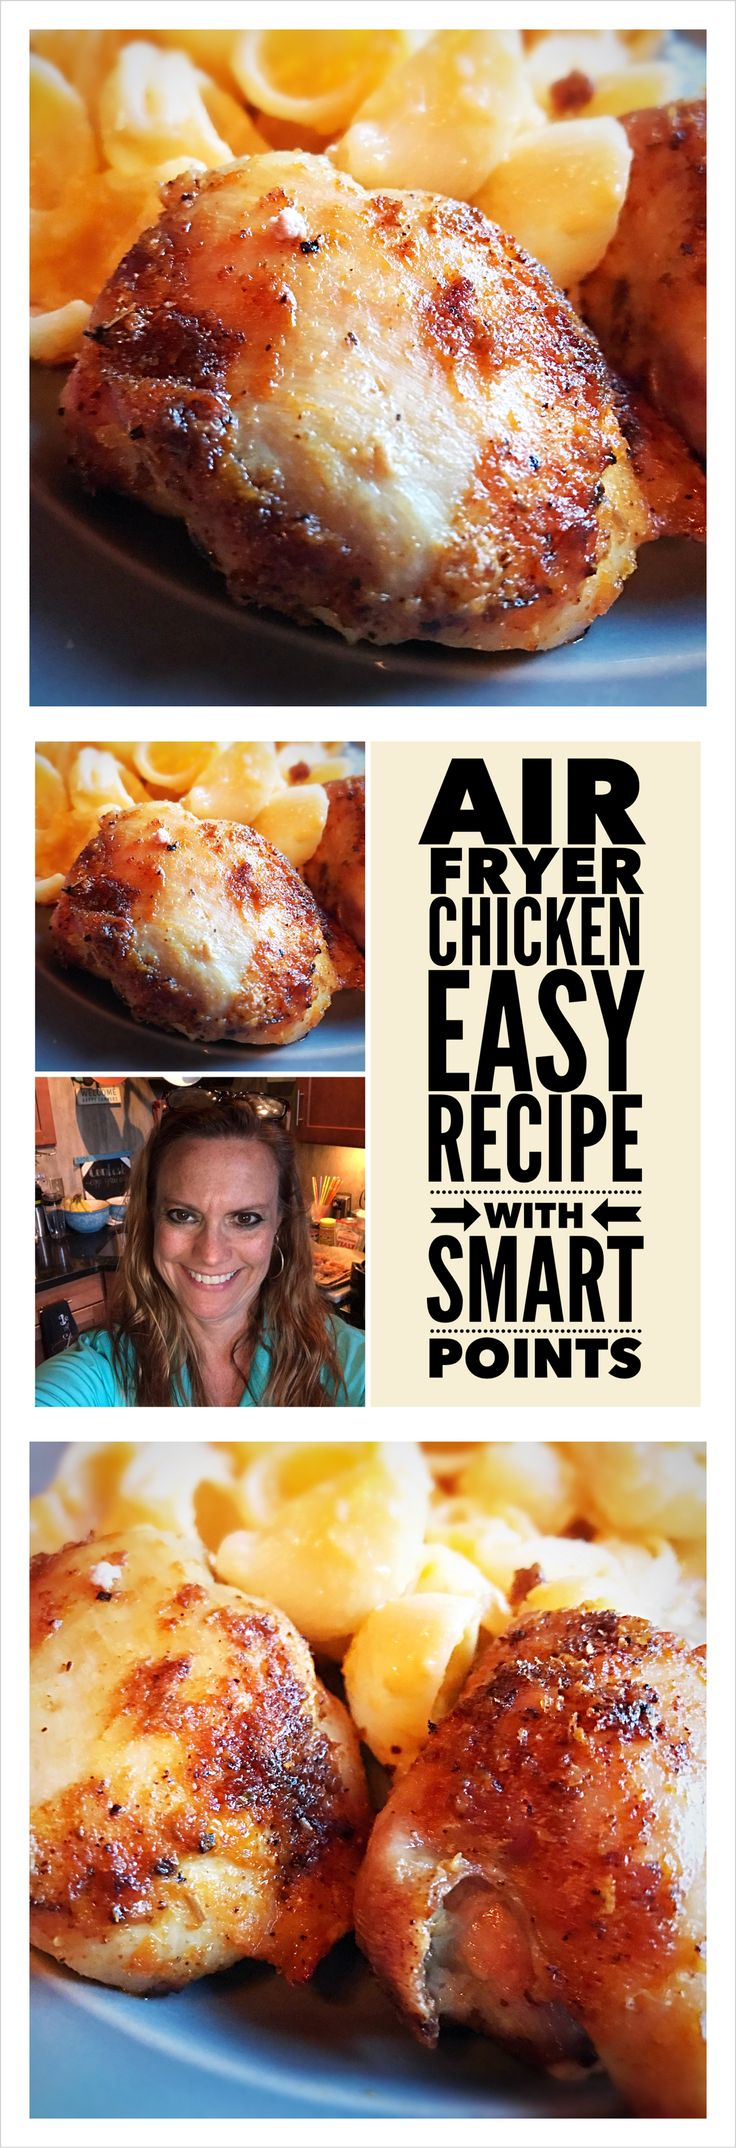 "Weight Watchers Air Fryer ""That Man's Chicken"" easy recipe with Smart Points Watch it here! https://youtu.be/wcqfs83Lxek Smart Points: 4 to 5 per chicken thigh Prep Time: 3 minutes Cook Time: 18 minutes Total Time: 21 minutes For the complete recipe and instructions visit my blog tomorrow! Did you enjoy this recipe idea? Remember to Like, Share, Comment and Subscribe so I can make more! Kelly a.k.a The Egg Lady"